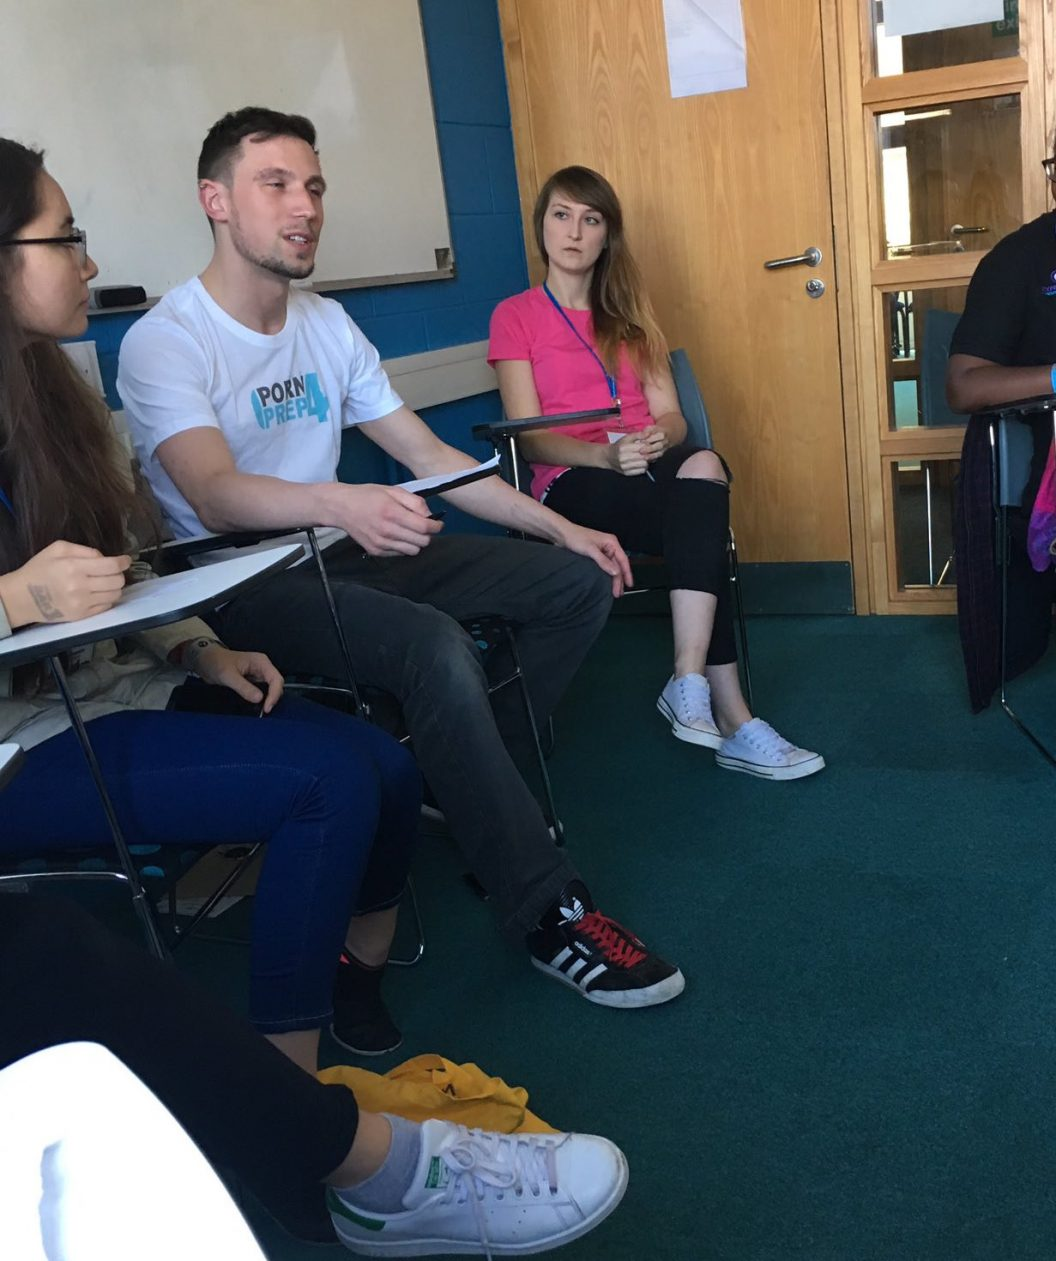 Porm4PrEP running workshops at the Brighton Sexpression Conference 2016